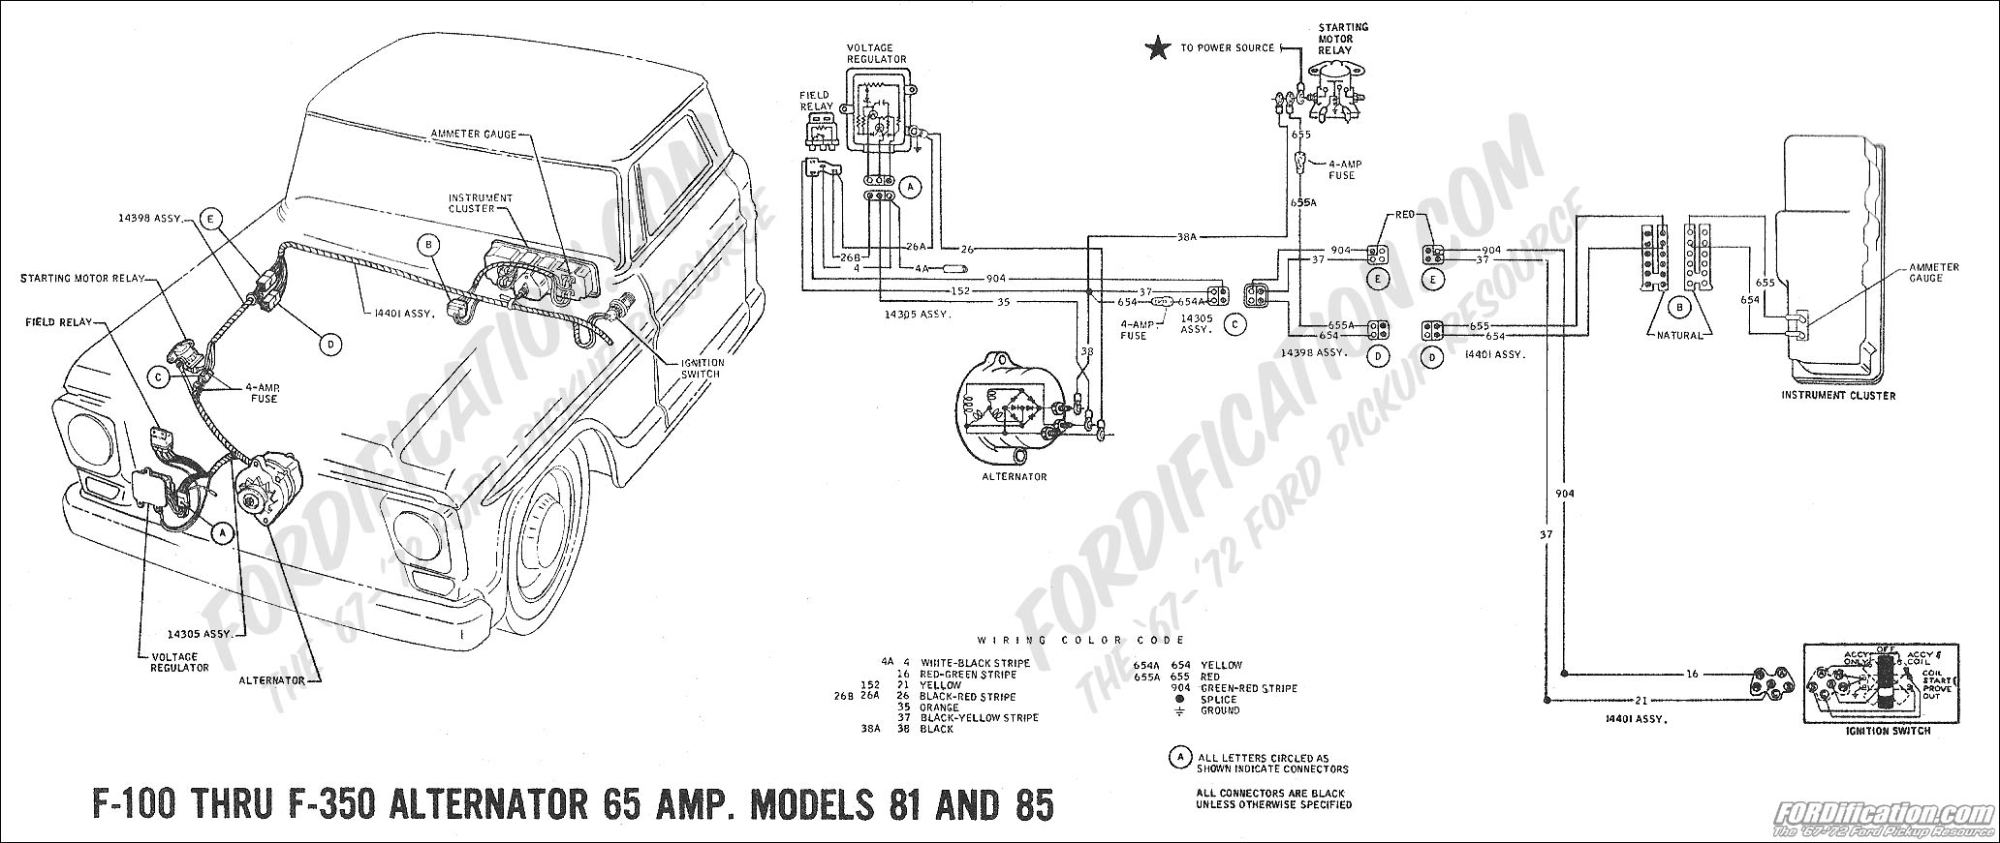 hight resolution of 1989 ford alt wiring diagram wiring diagram todays 1991 ford f 150 wiring diagram 1989 ford f150 alternator wiring diagram